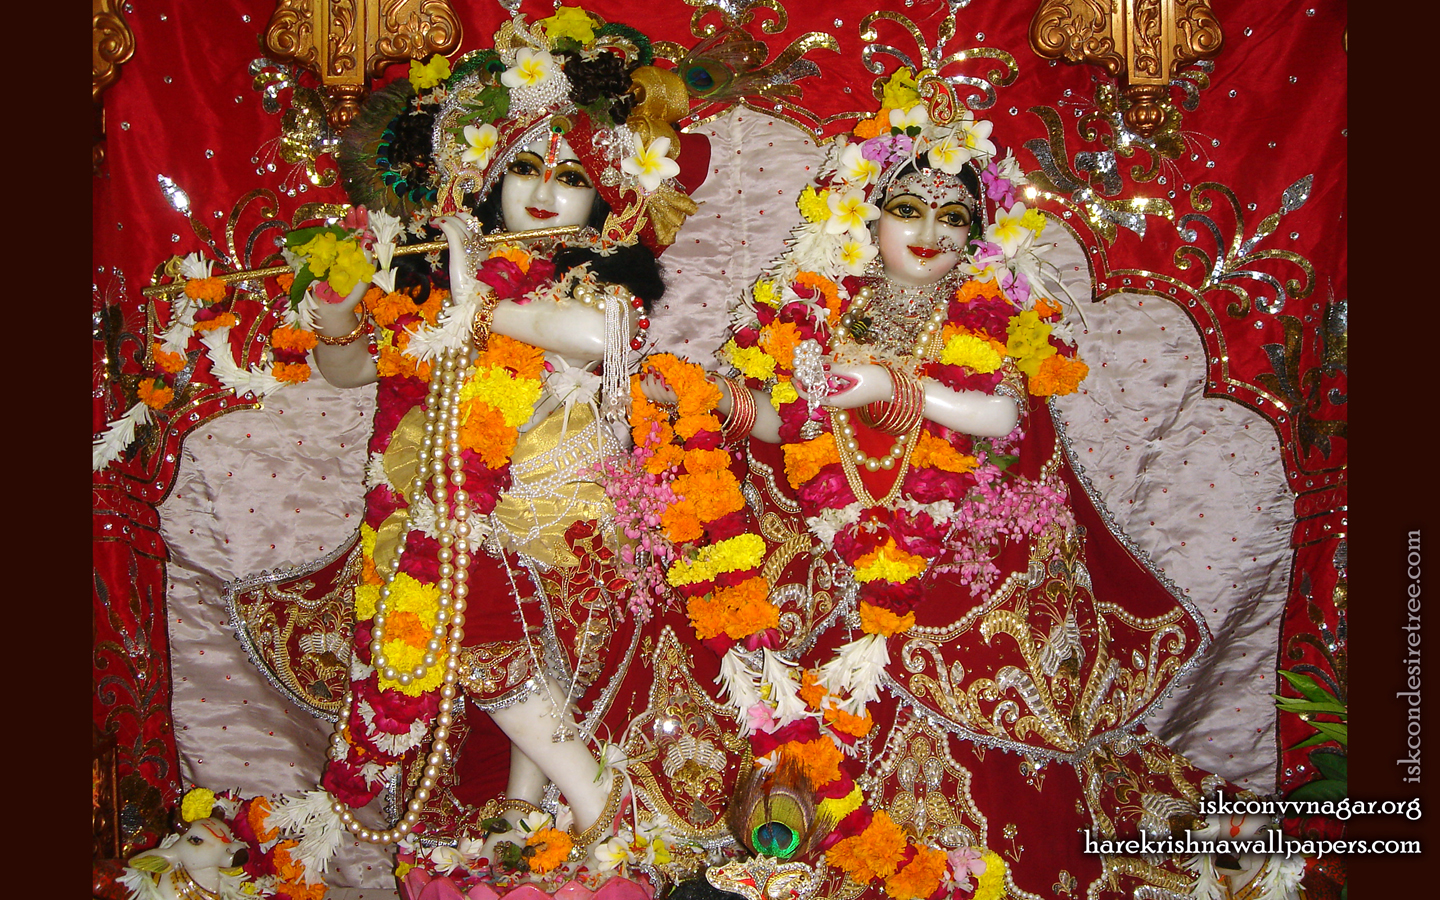 Sri Sri Radha Giridhari Wallpaper (027) Size 1440x900 Download